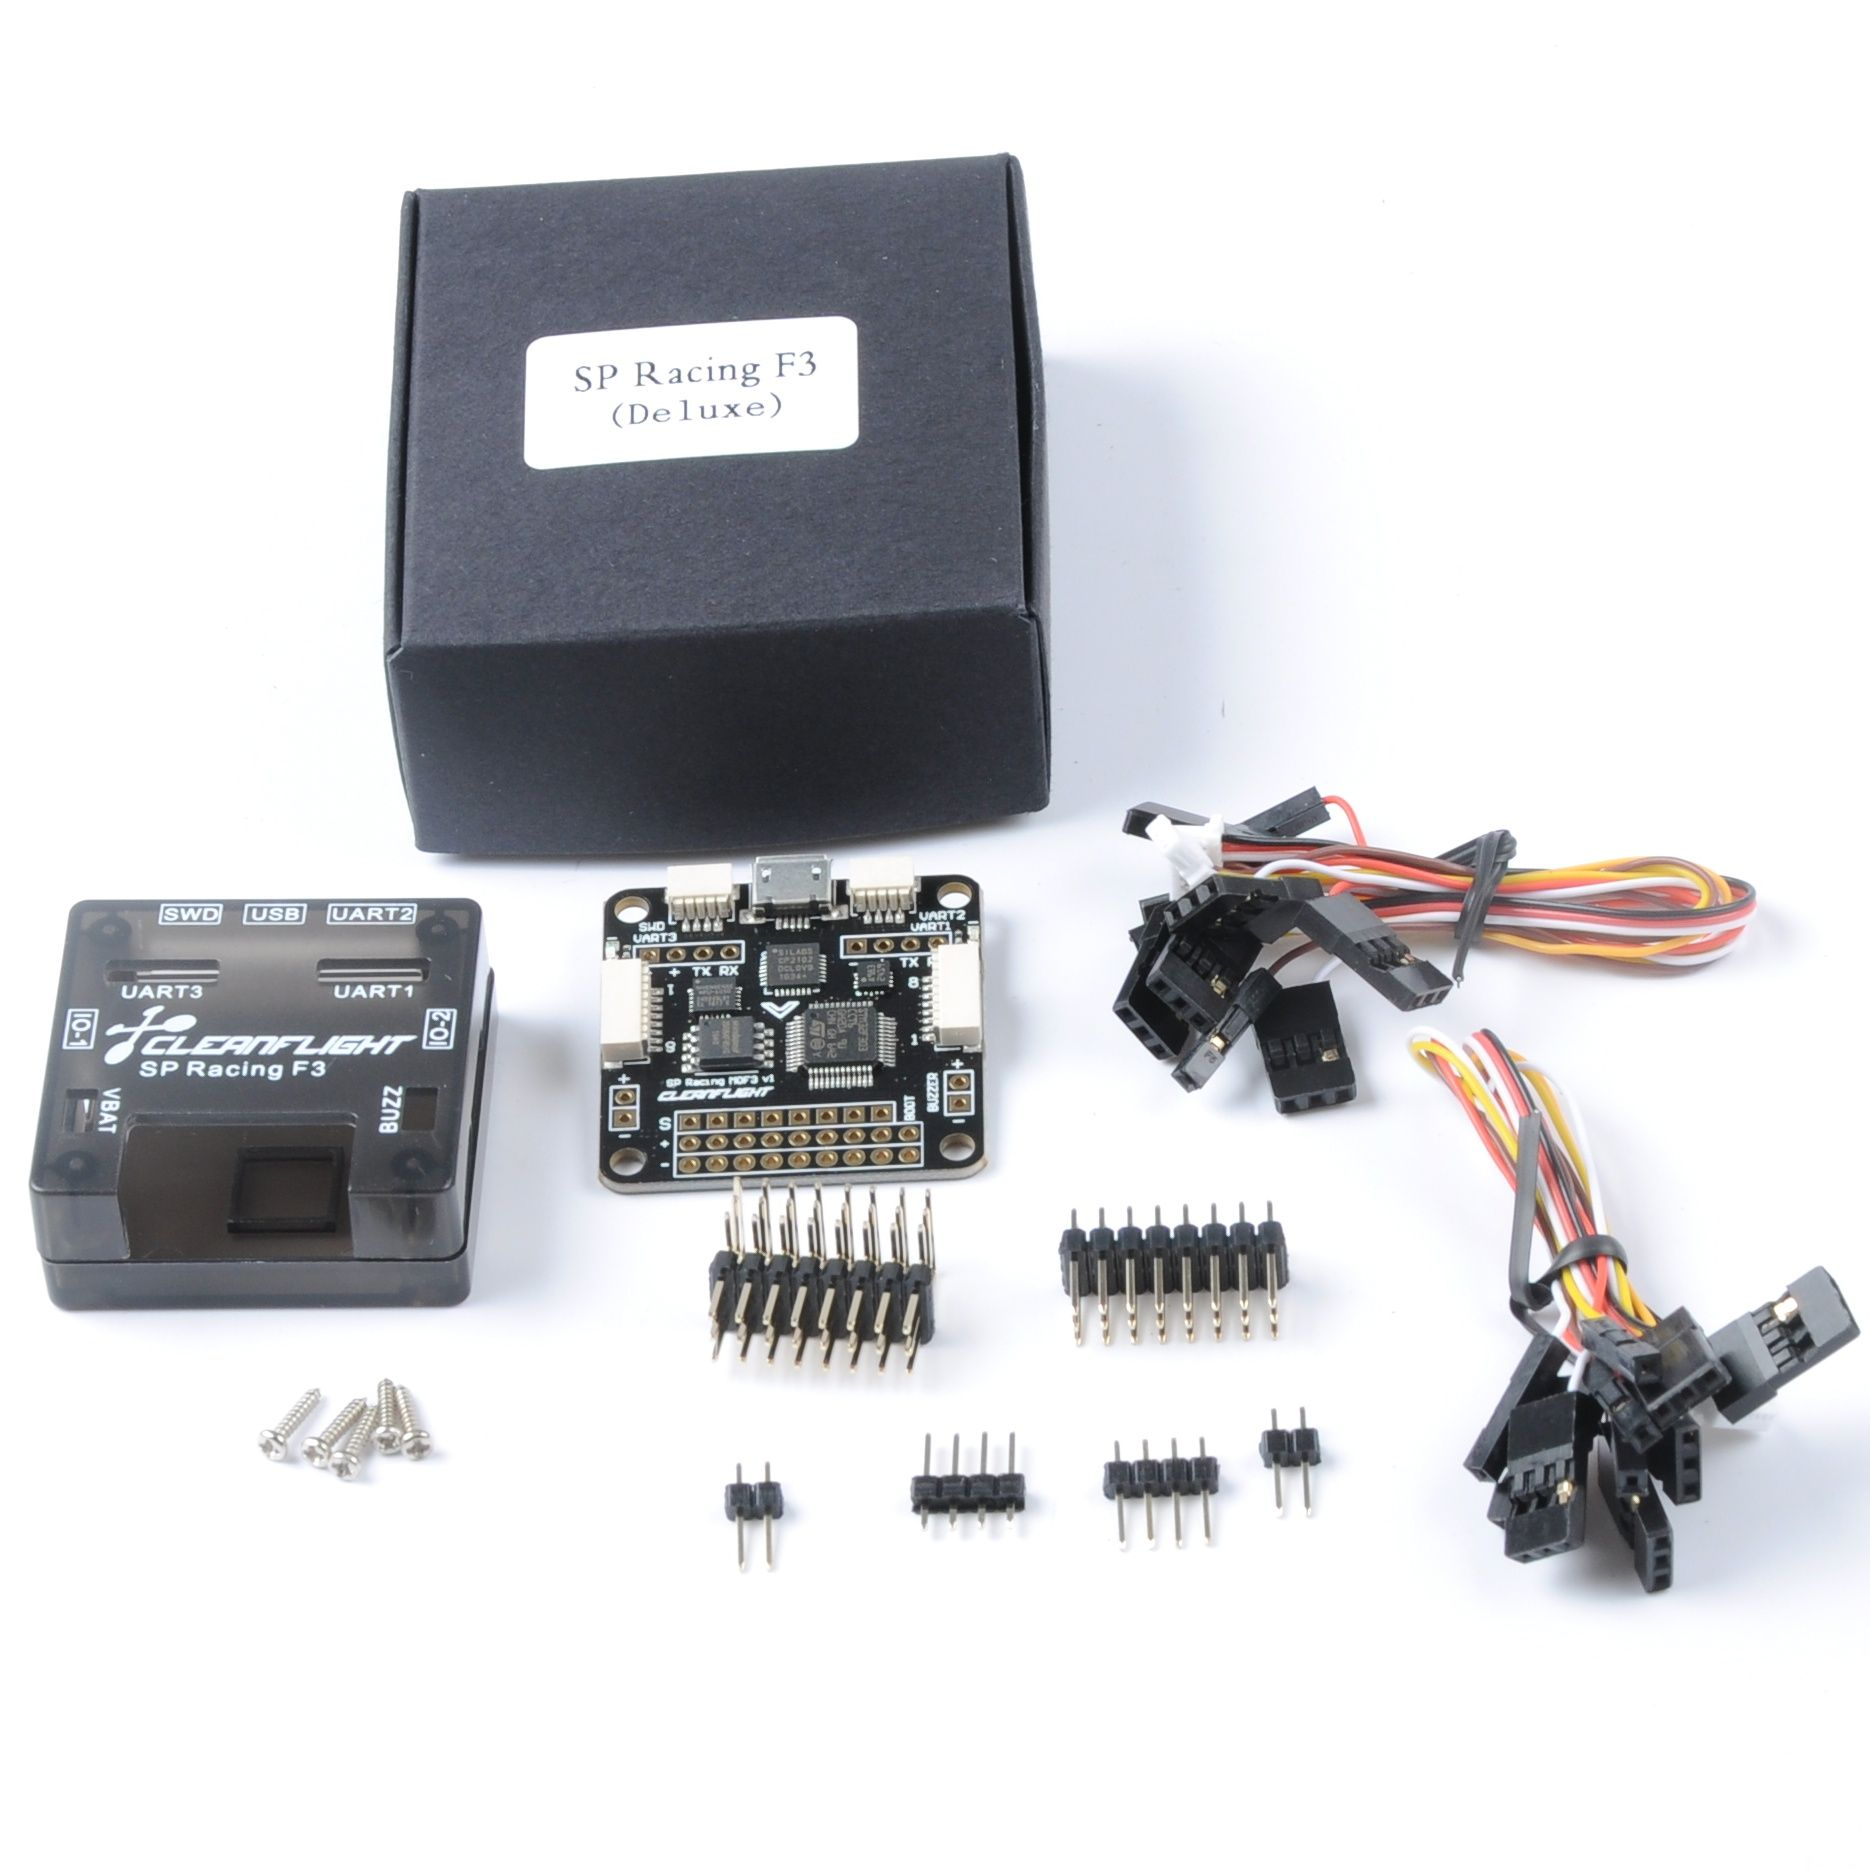 small resolution of sp racing f3 flight controller deluxe for quadcopter drone multicopter mpu9250 gyro acceleration are integrated electronic compass sensors